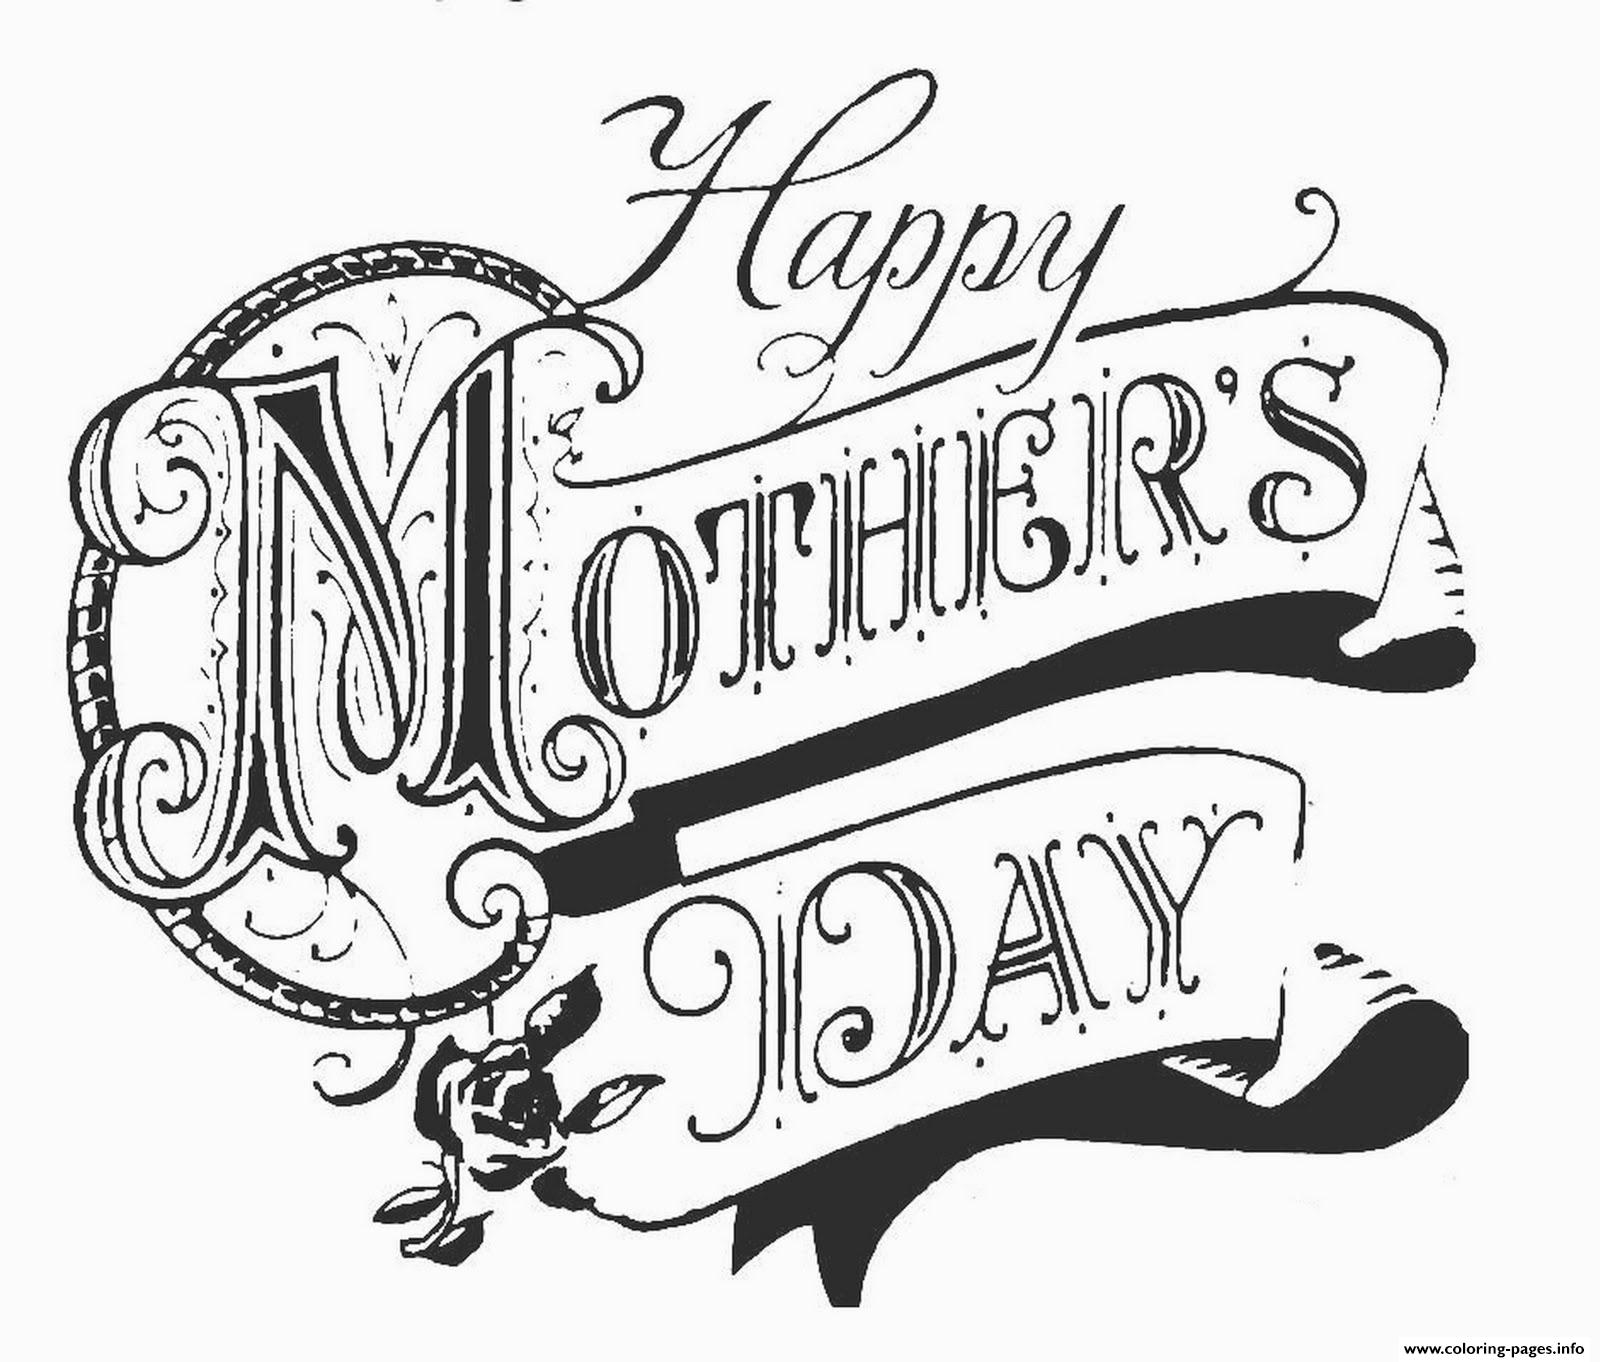 mothers day coloring pages for adults Happy Mother Day Adult Old School Coloring Pages Printable mothers day coloring pages for adults